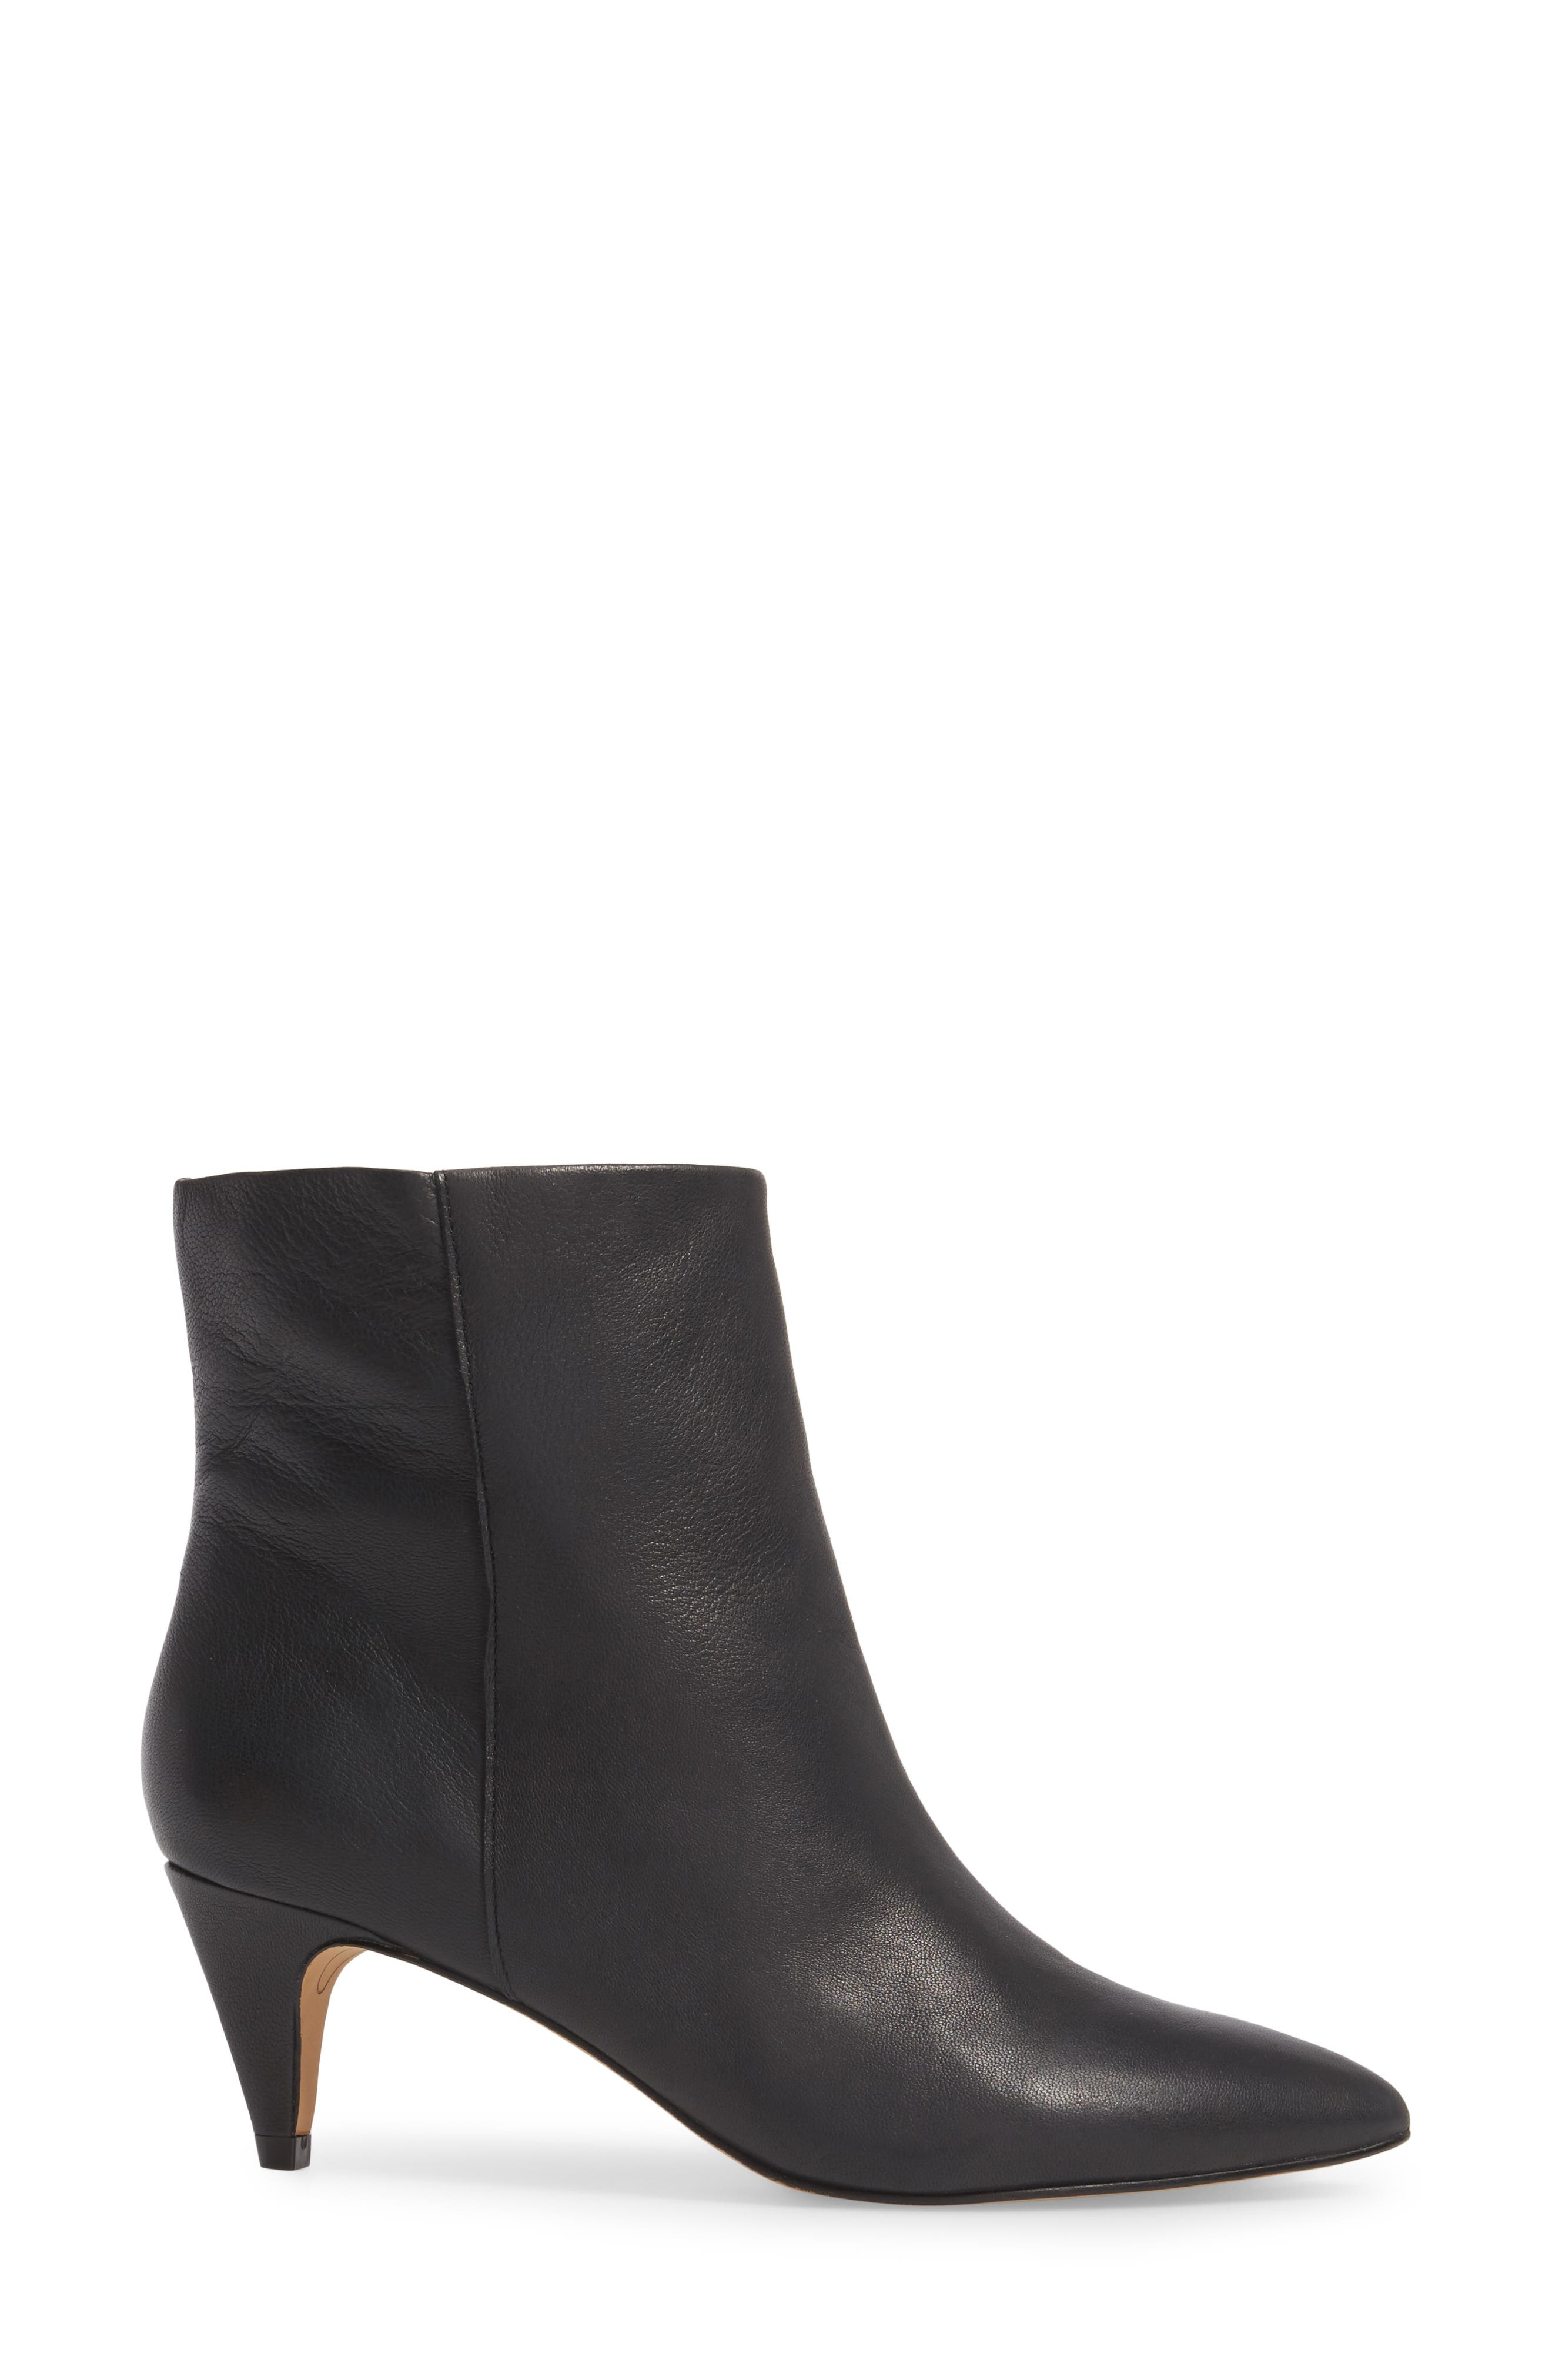 DOLCE VITA,                             Dee Bootie,                             Alternate thumbnail 3, color,                             001